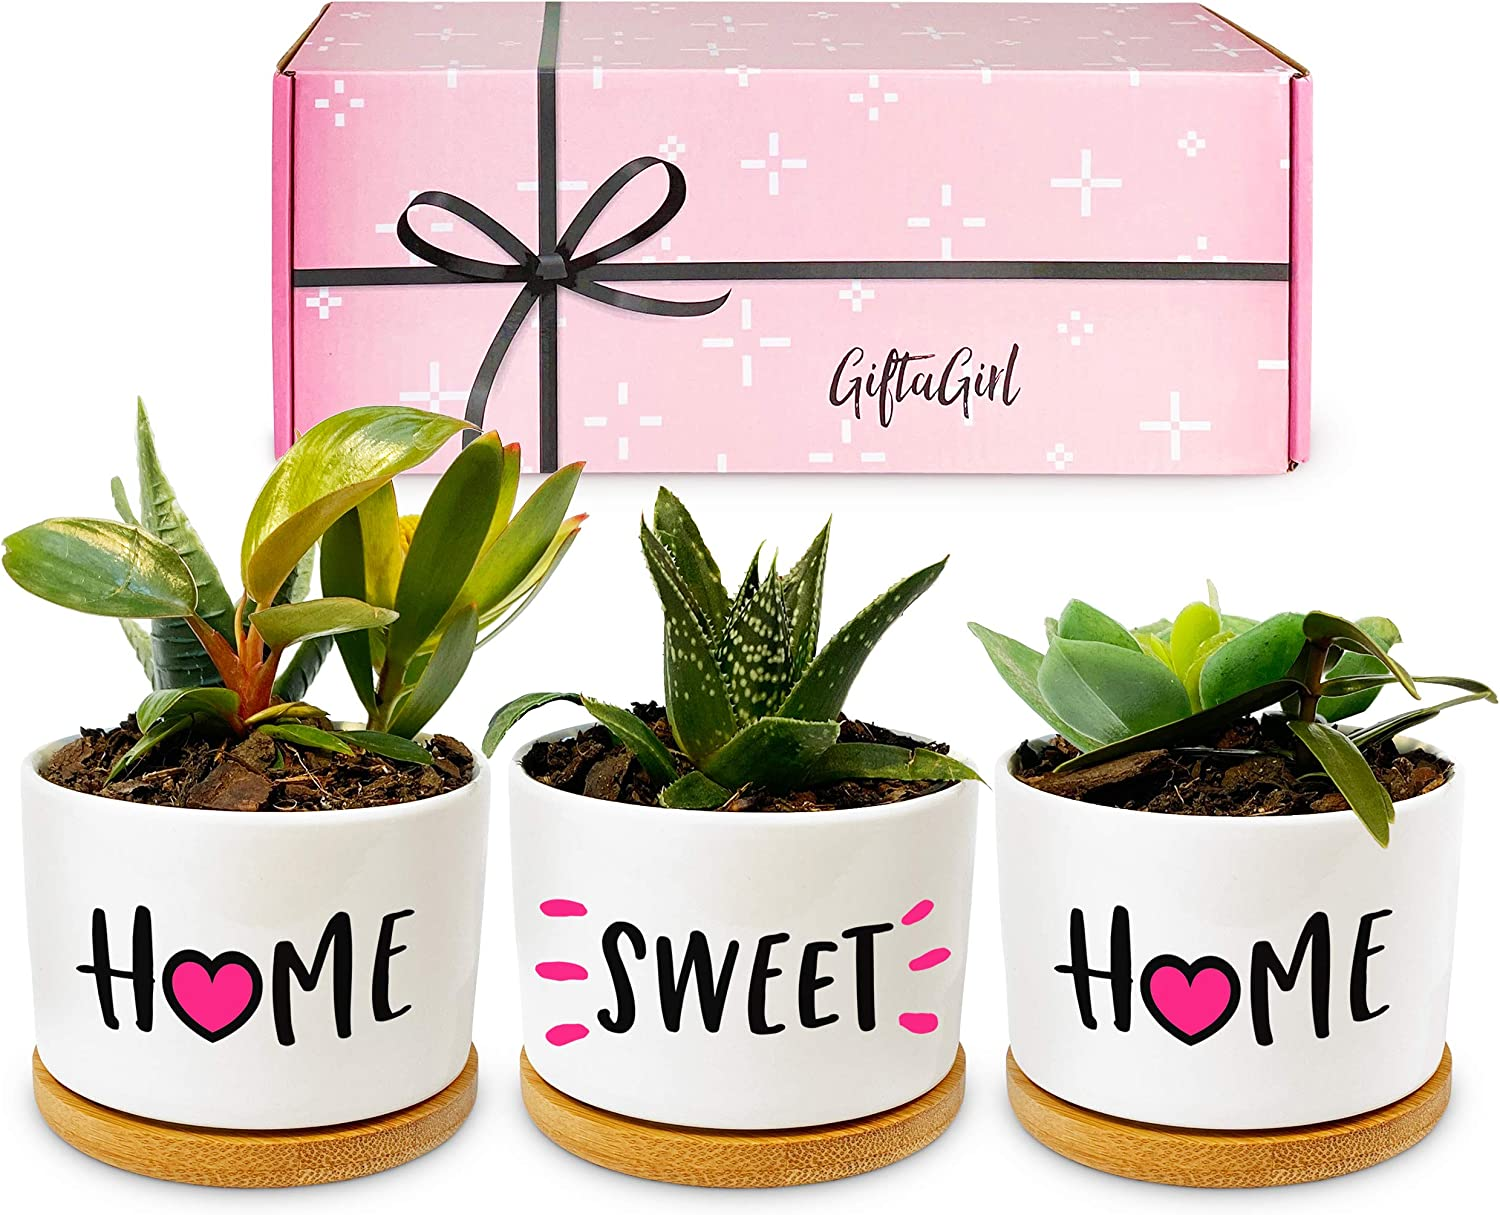 GIFTAGIRL House Warming Presents for New Home - Housewarming Gift, Our Home Sweet Home Succulent Pots, are Ideal Housewarming Gifts for New Home, New Home Gifts for Home, House Warming Gifts New Home